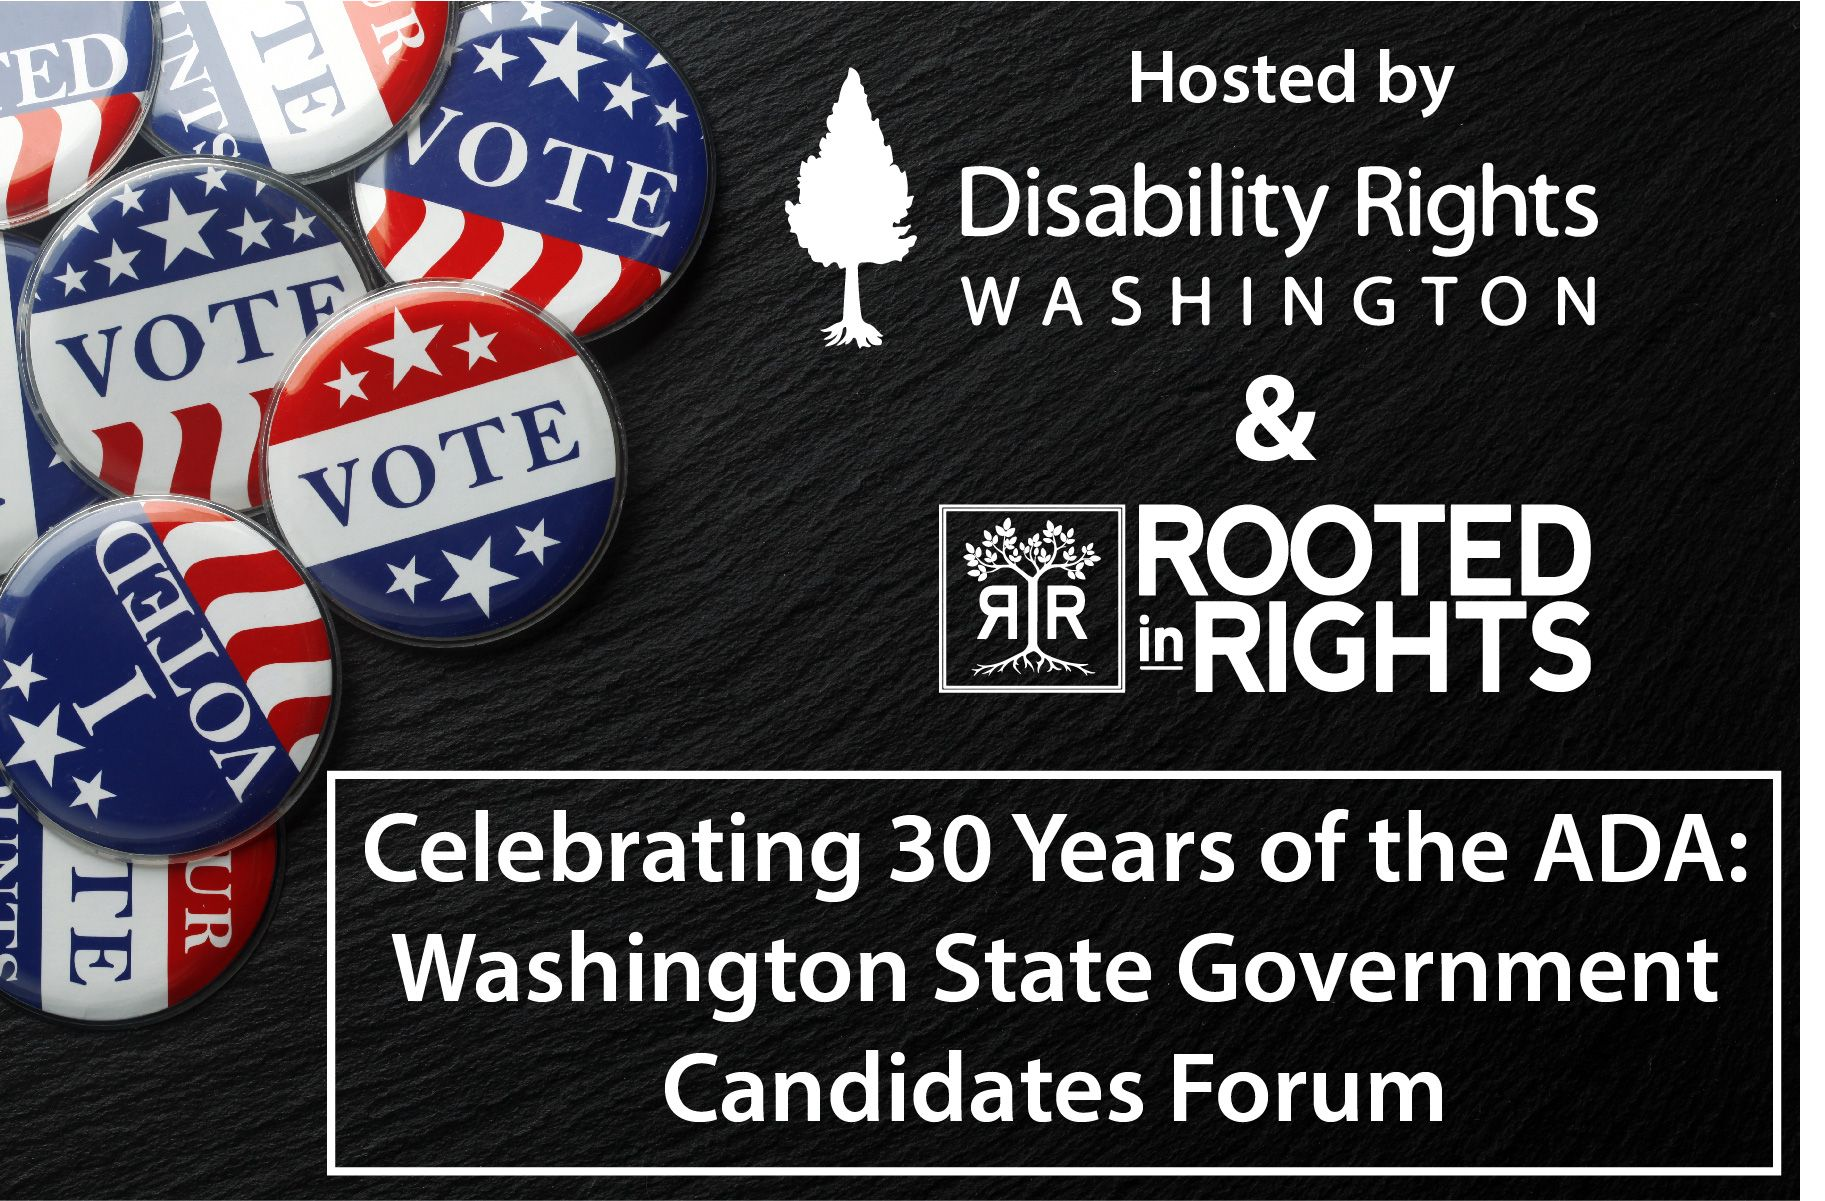 Celebrating 30 Years of the ADA: Washington State Government Candidates Forum